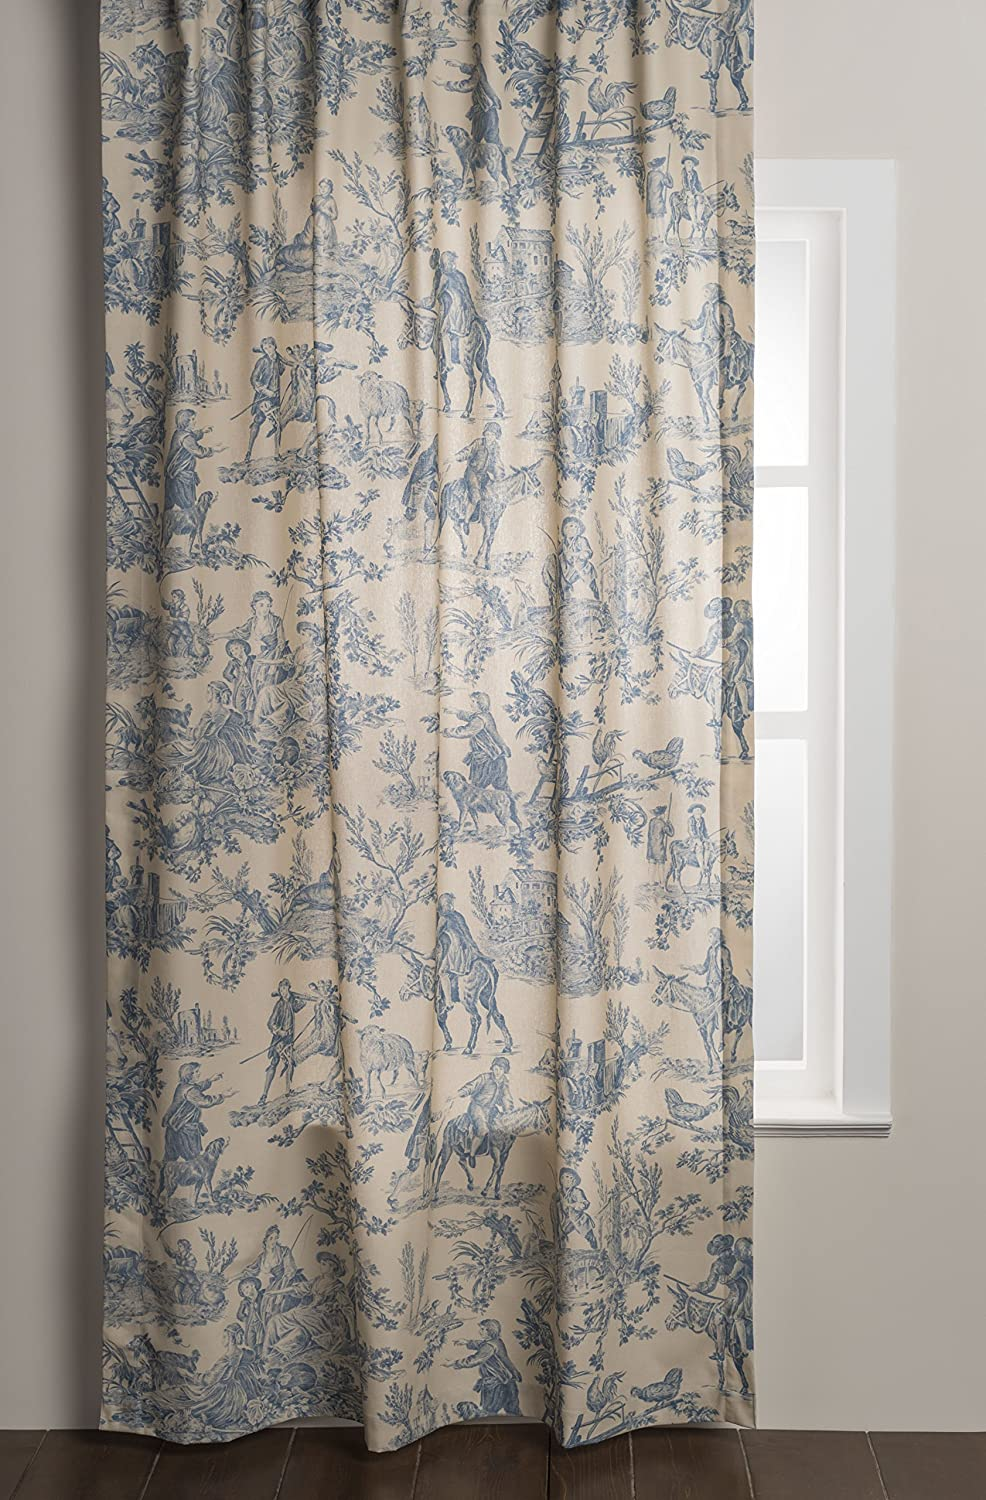 Blue French toile curtain panel. #frenchtoile #curtains #panels #frenchcountry #homedecor #windowtreatment